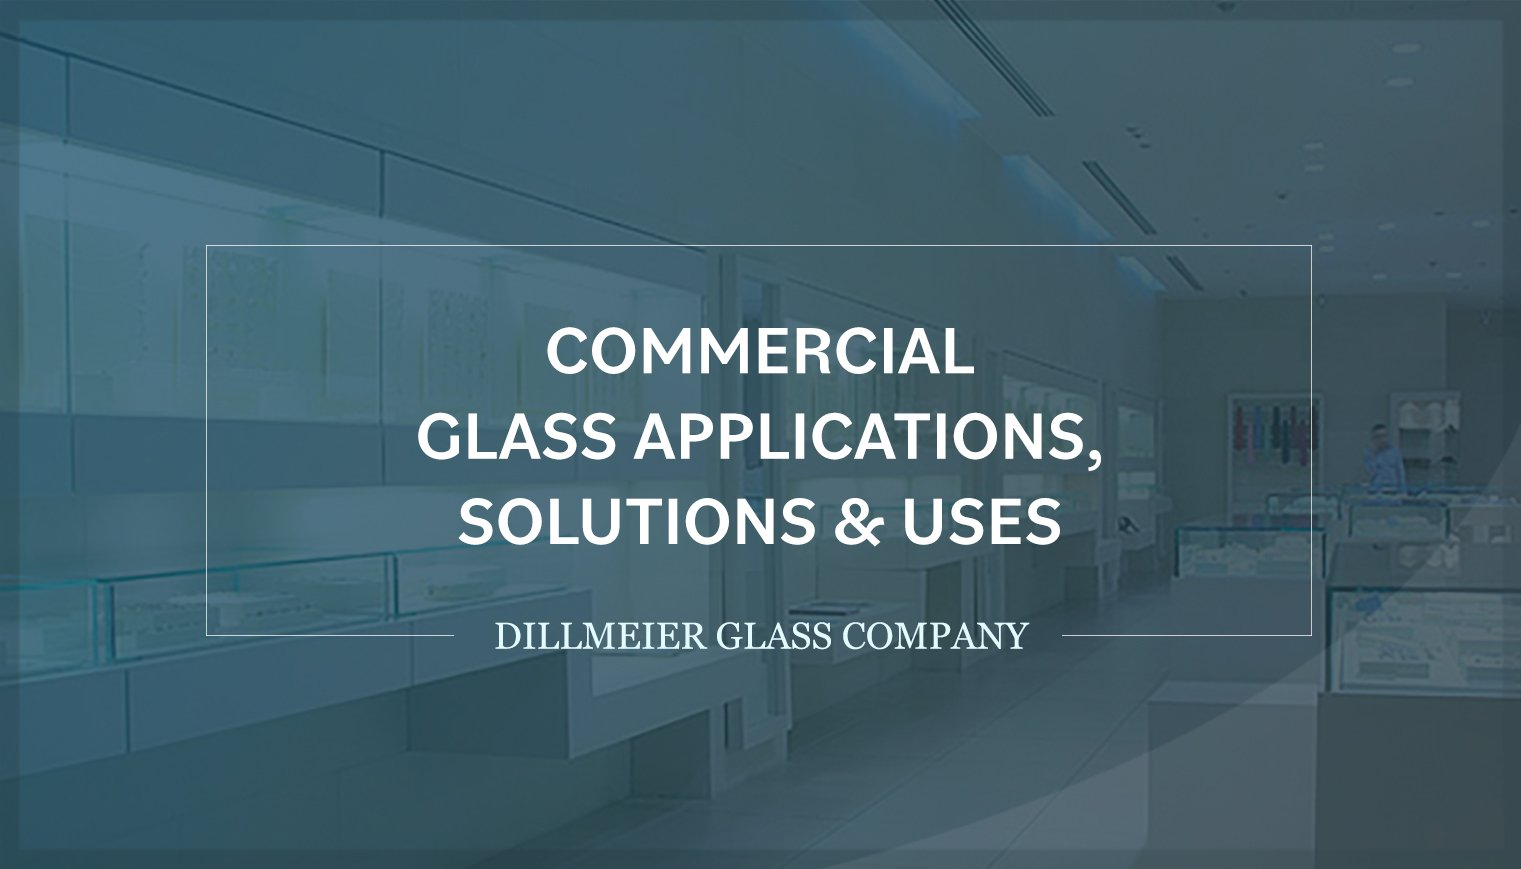 Commercial Glass Applications, Solutions & Uses